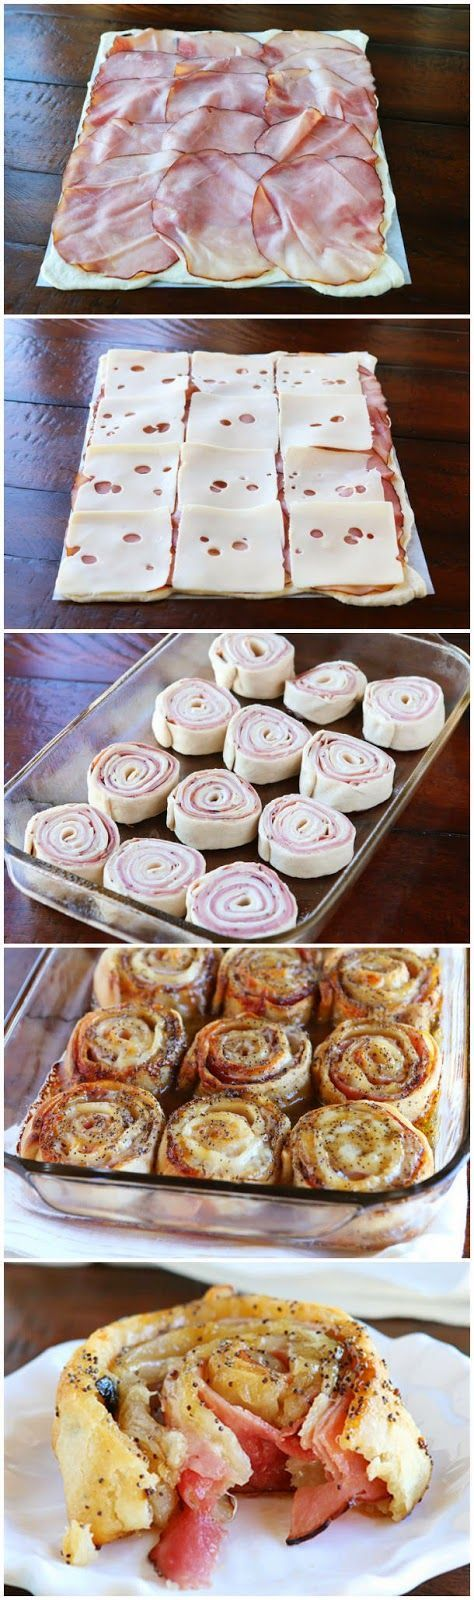 Ham and cheese rolls.